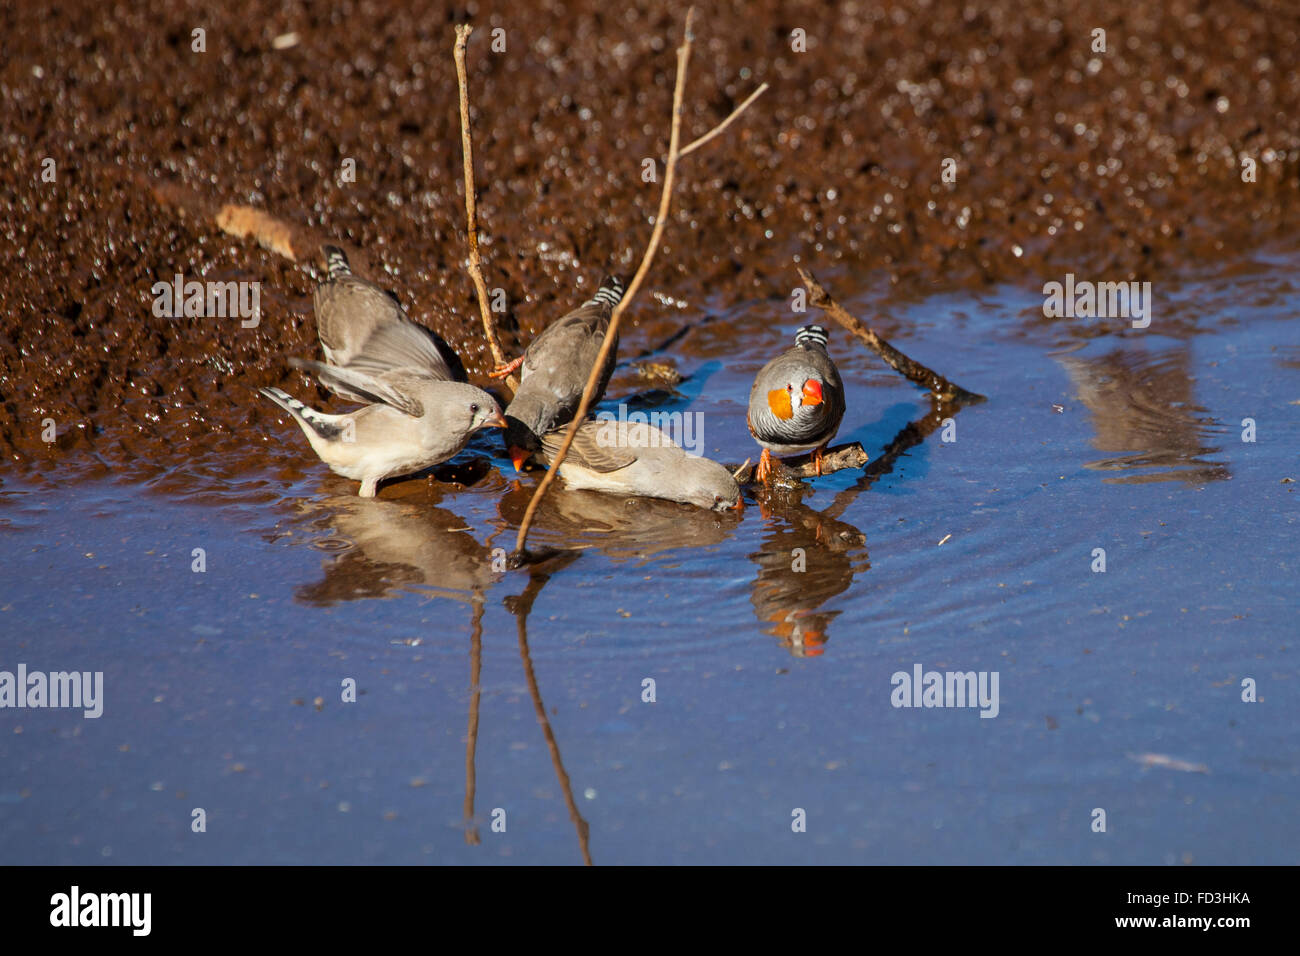 Zebra finches (Taeniopygia guttata) drinking at at a water hole at Emily Gap, East MacDonnell Ranges, Central Australia. - Stock Image